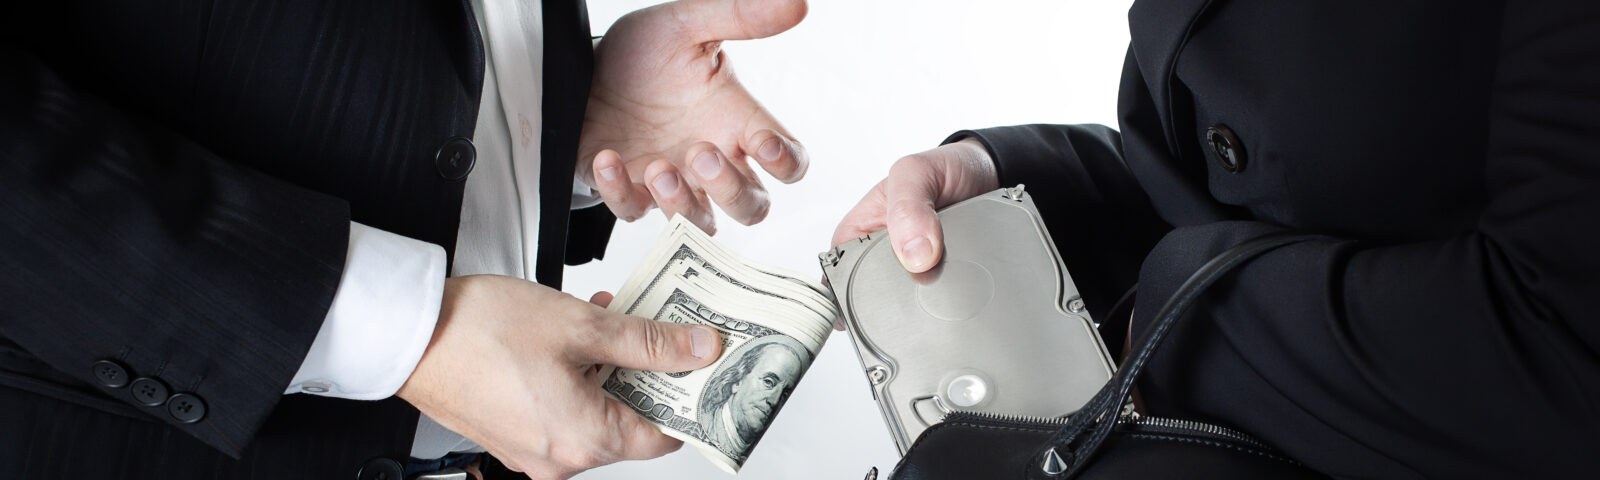 Clear message of Labor Court to employees: Steal and Laundered Money!